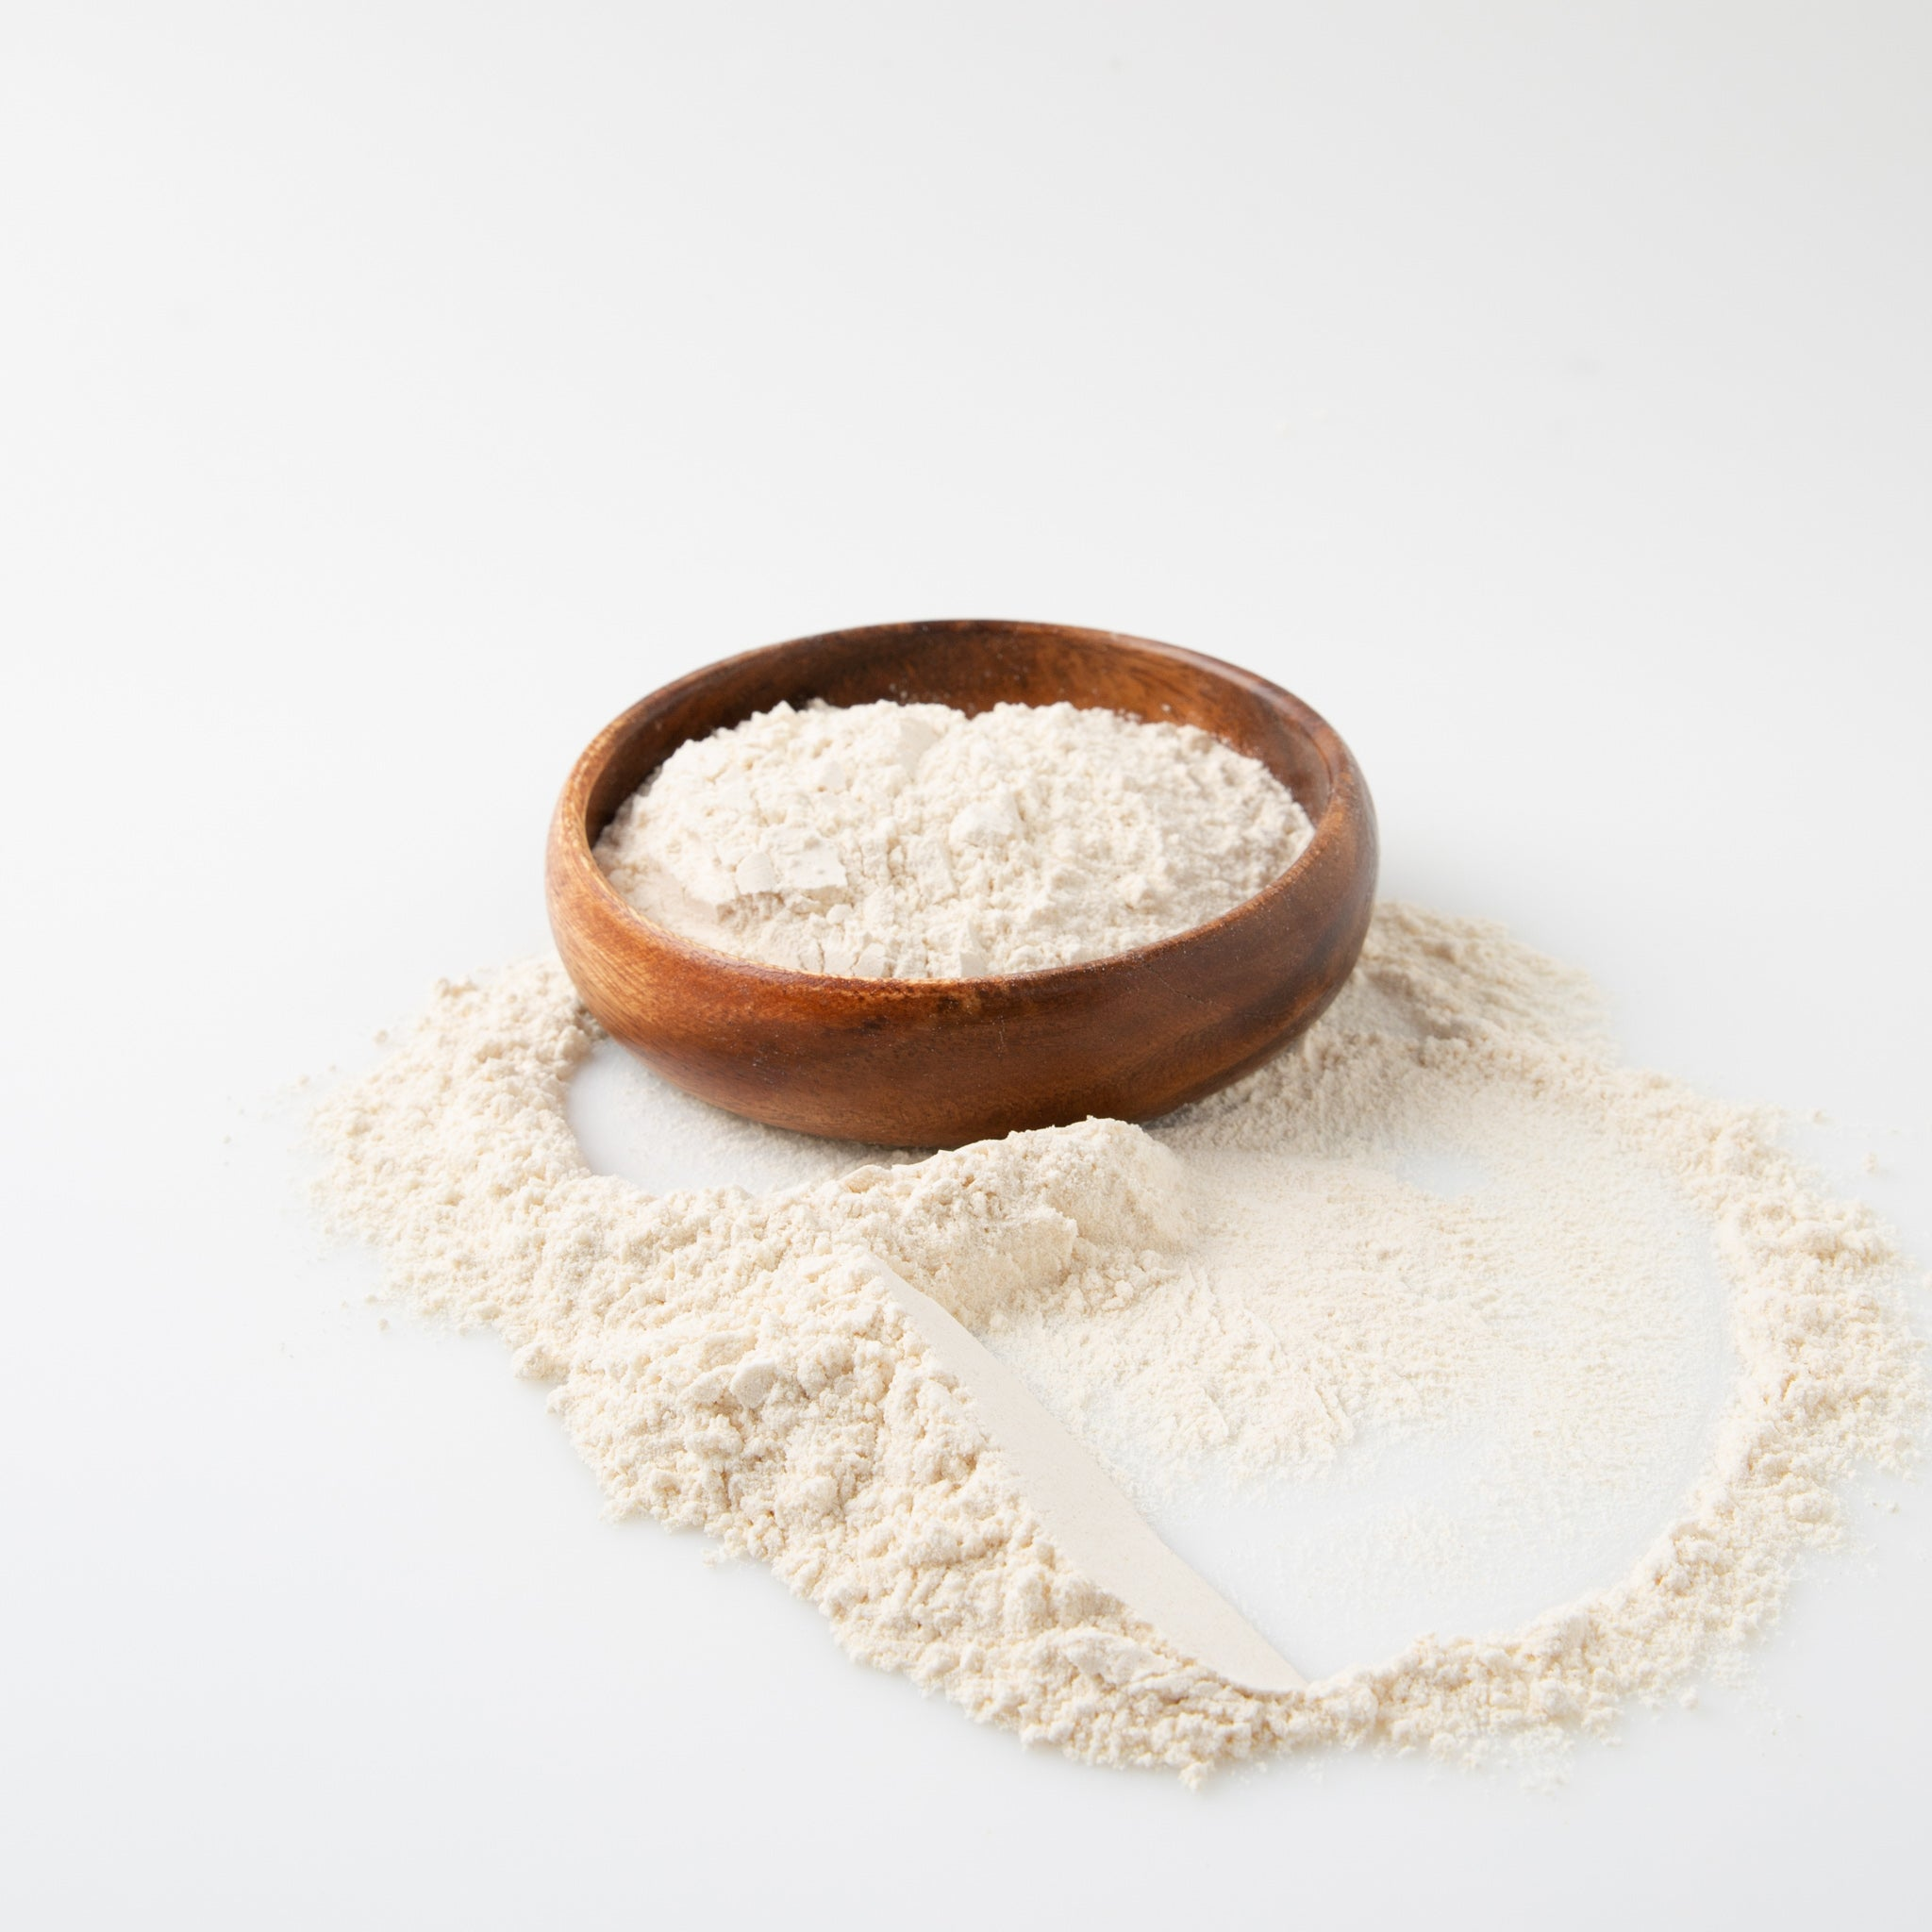 Organic Unbleached White Bakers Flour